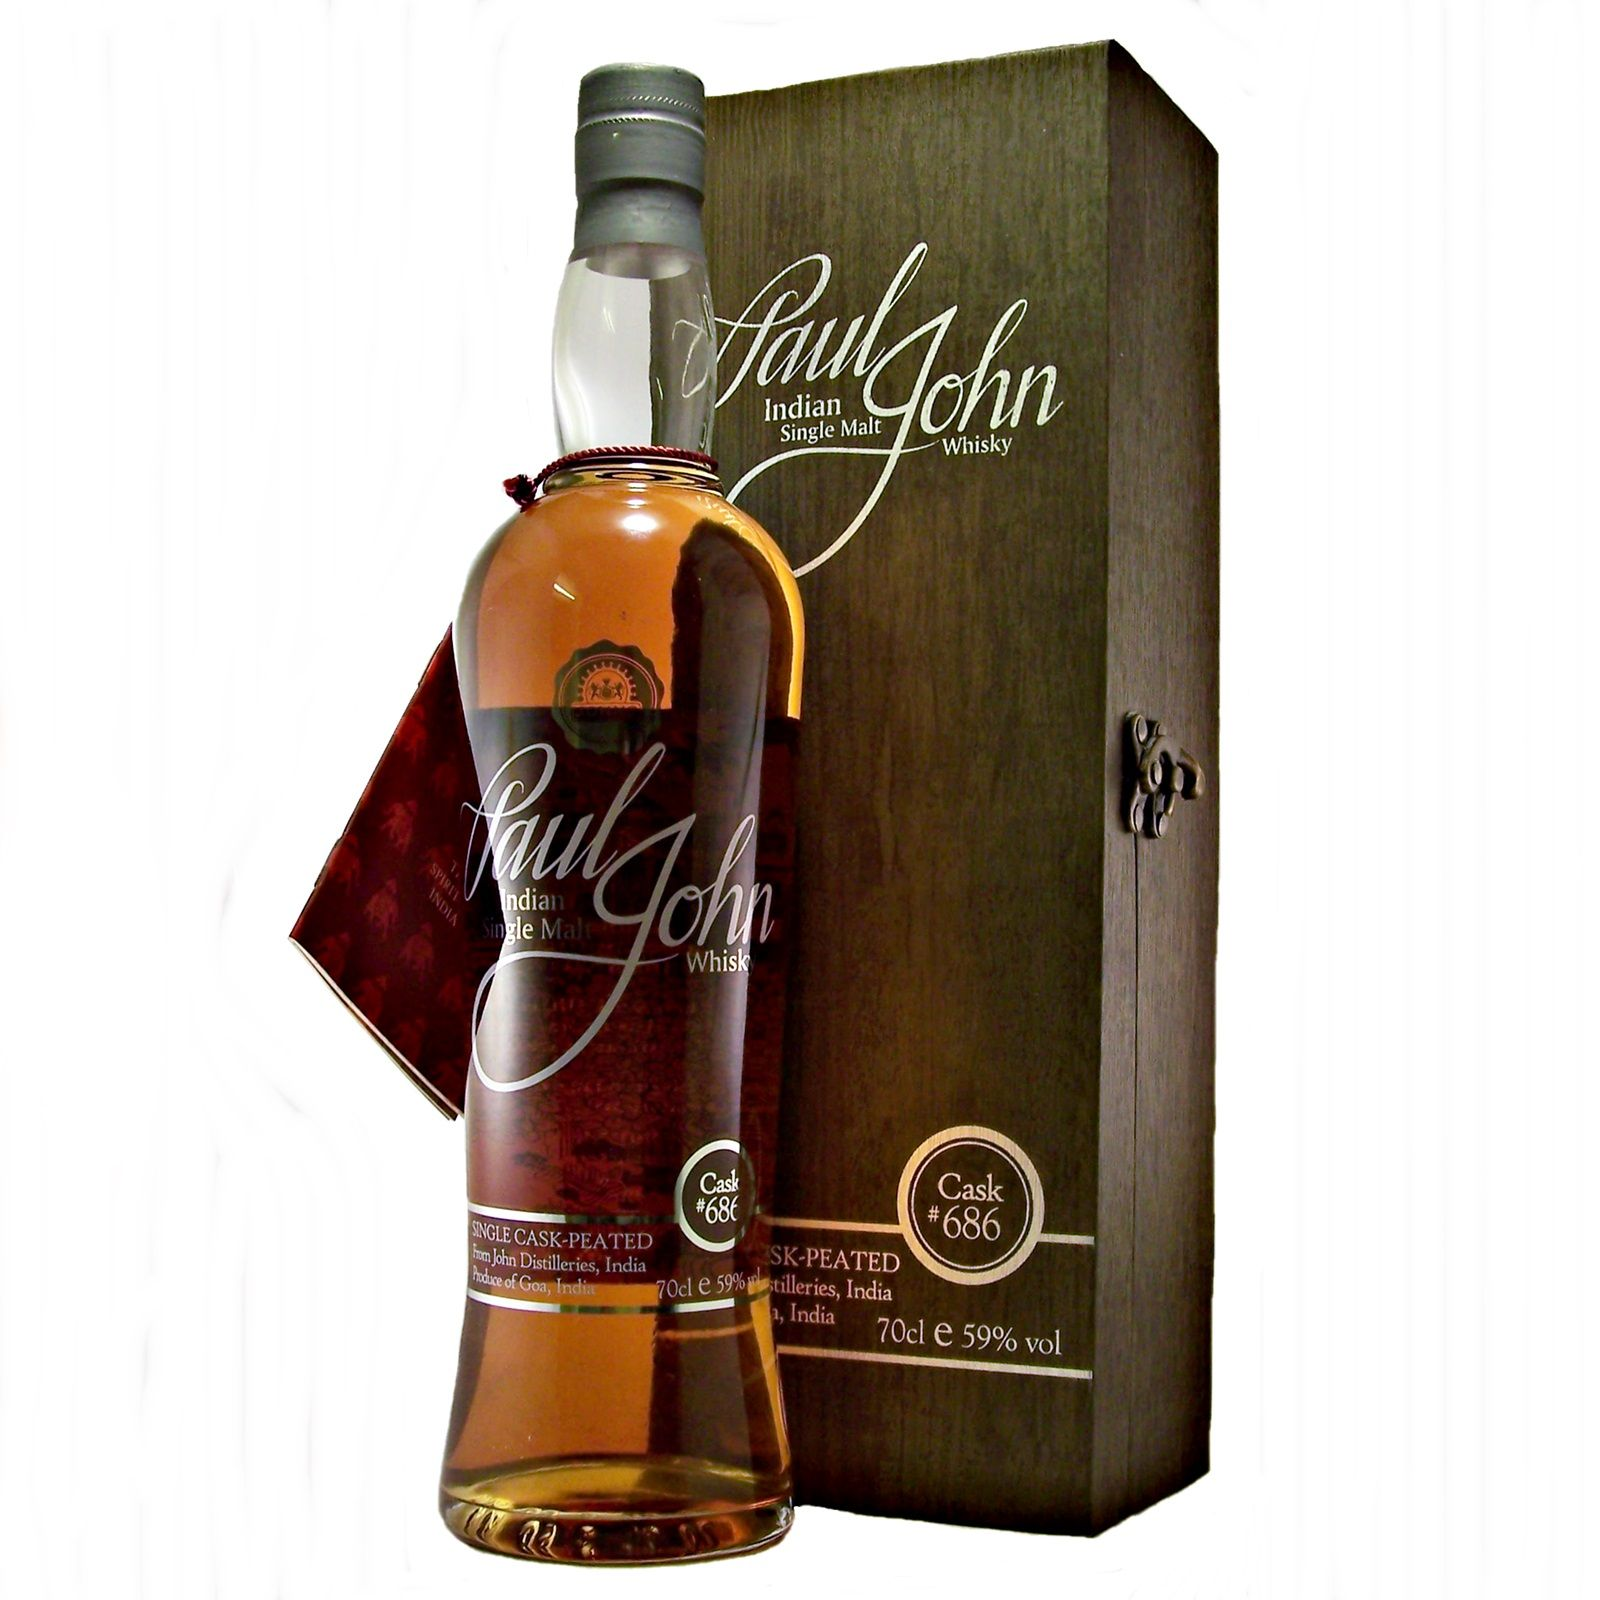 Paul John Single Cask 686 Peated Single Malt Whisky Whisky Malt Whisky